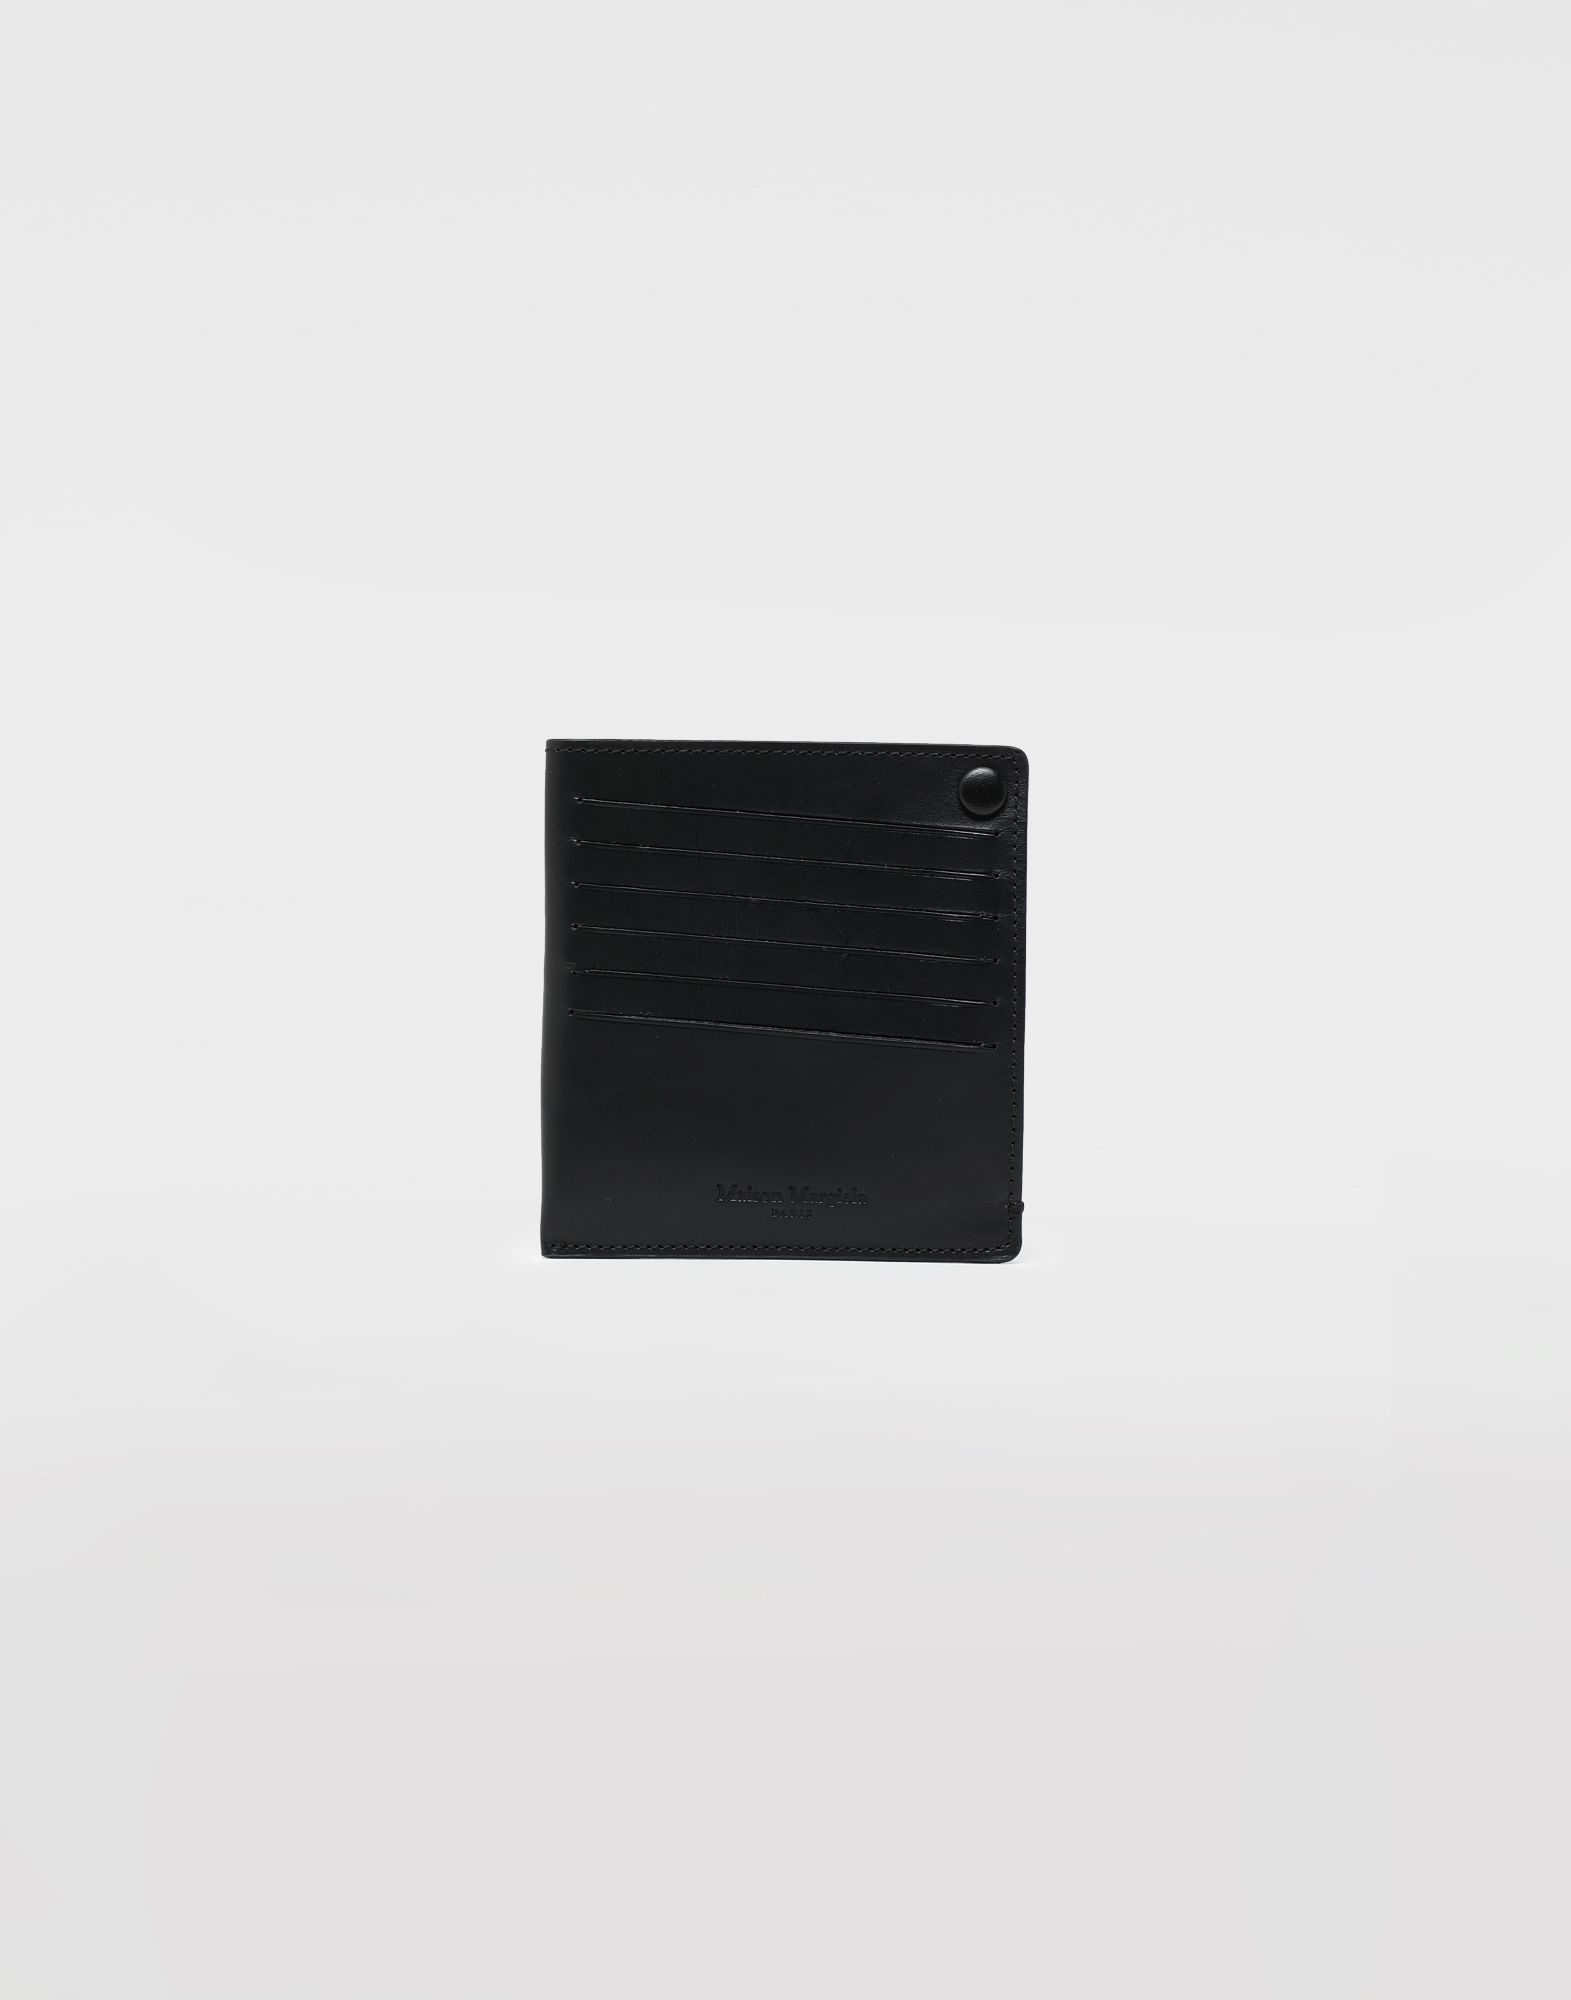 MAISON MARGIELA Leather popper wallet Wallet Man f